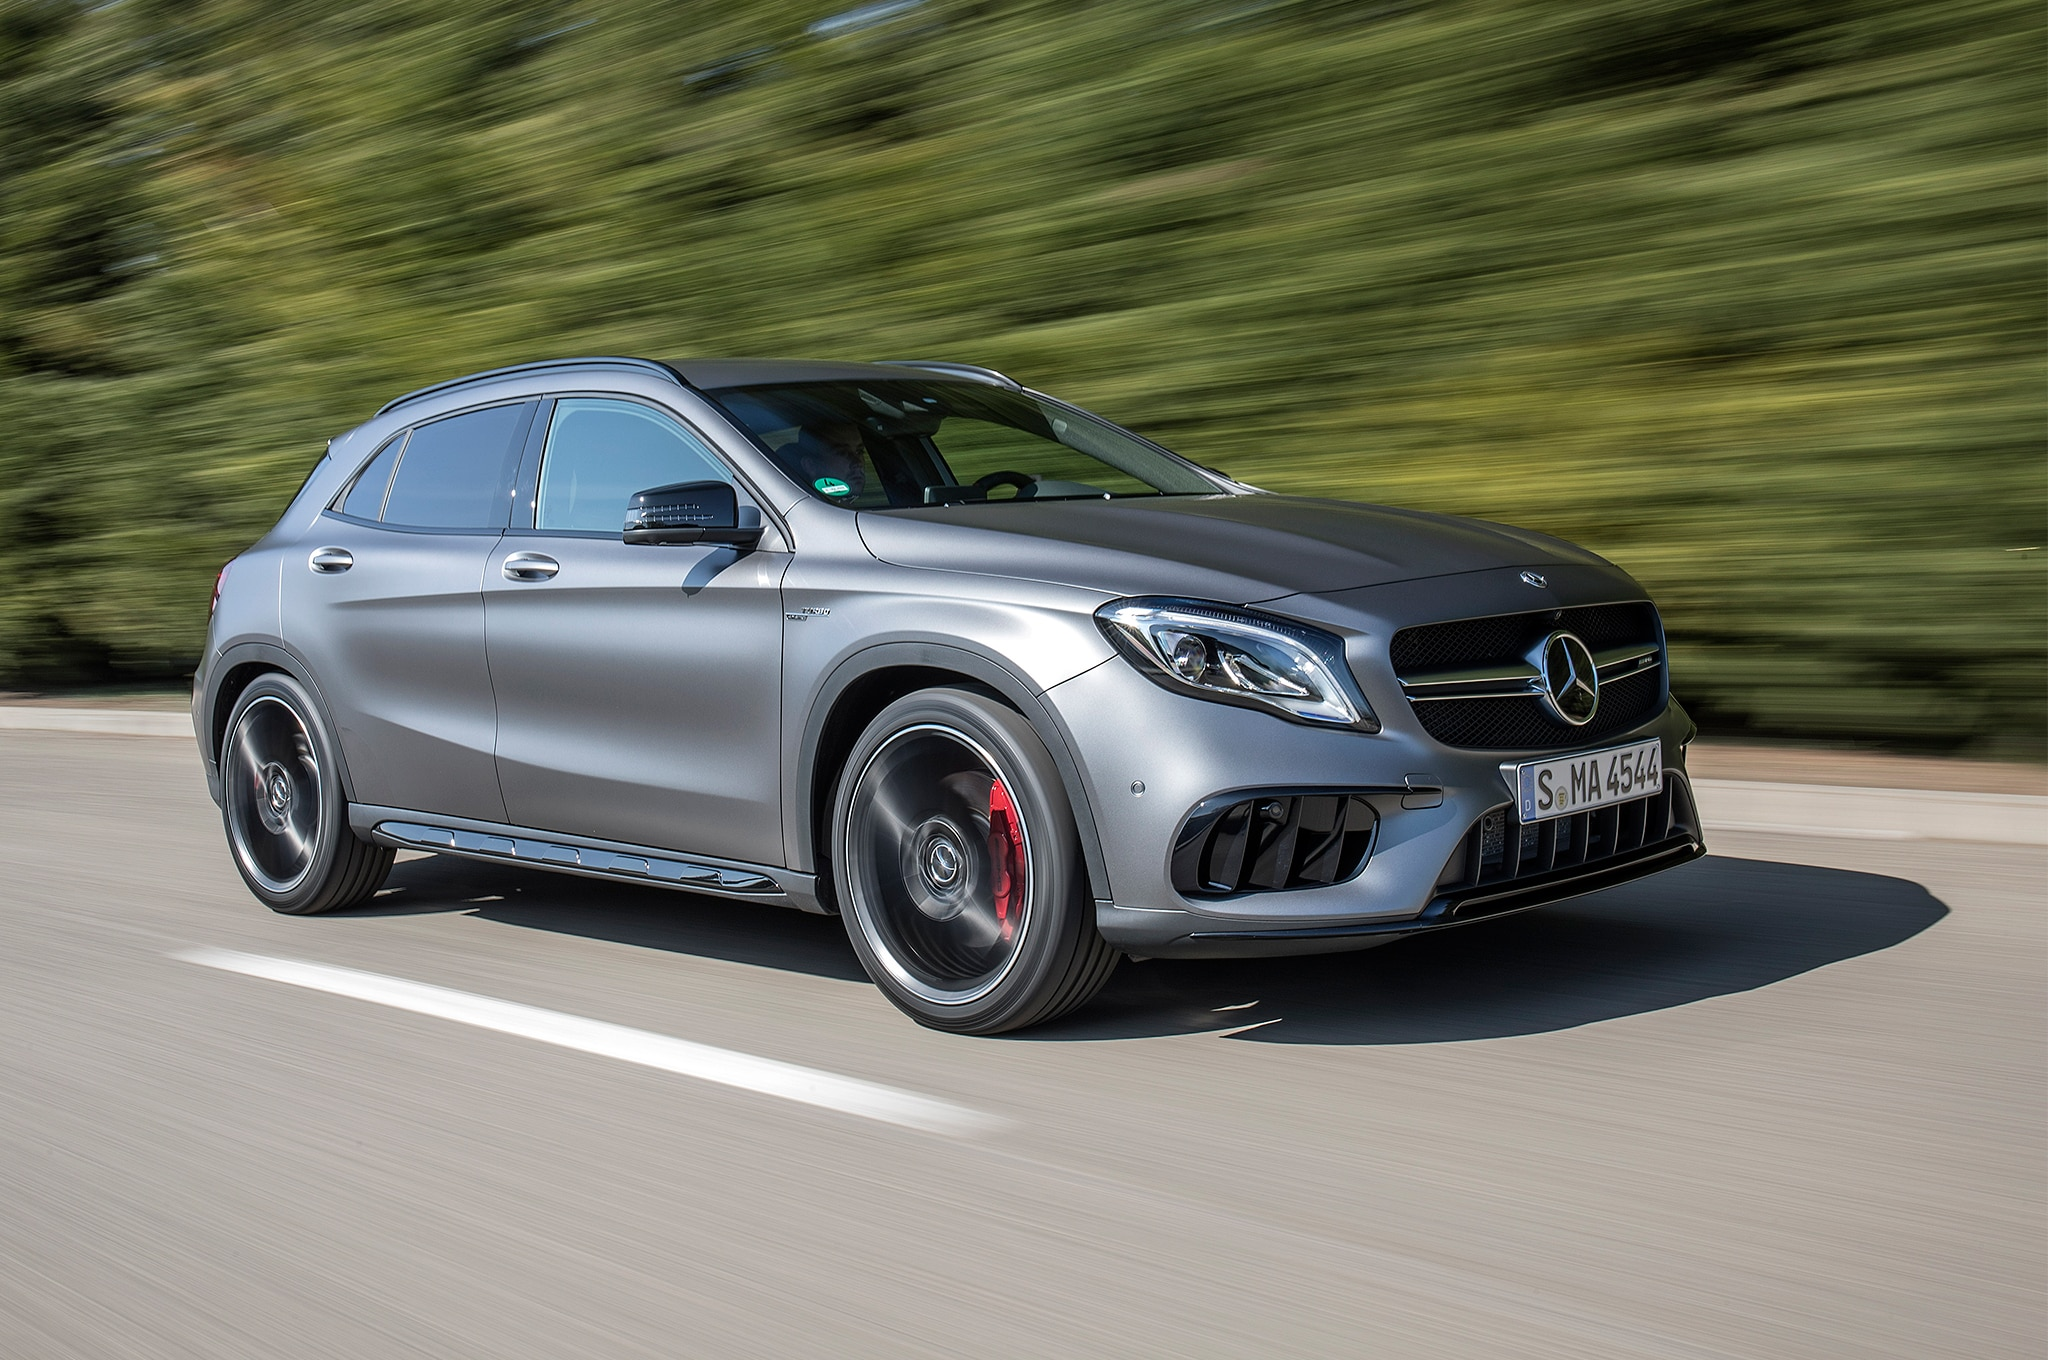 2018 mercedes benz gla class first drive review for Mercedes benz gla class review